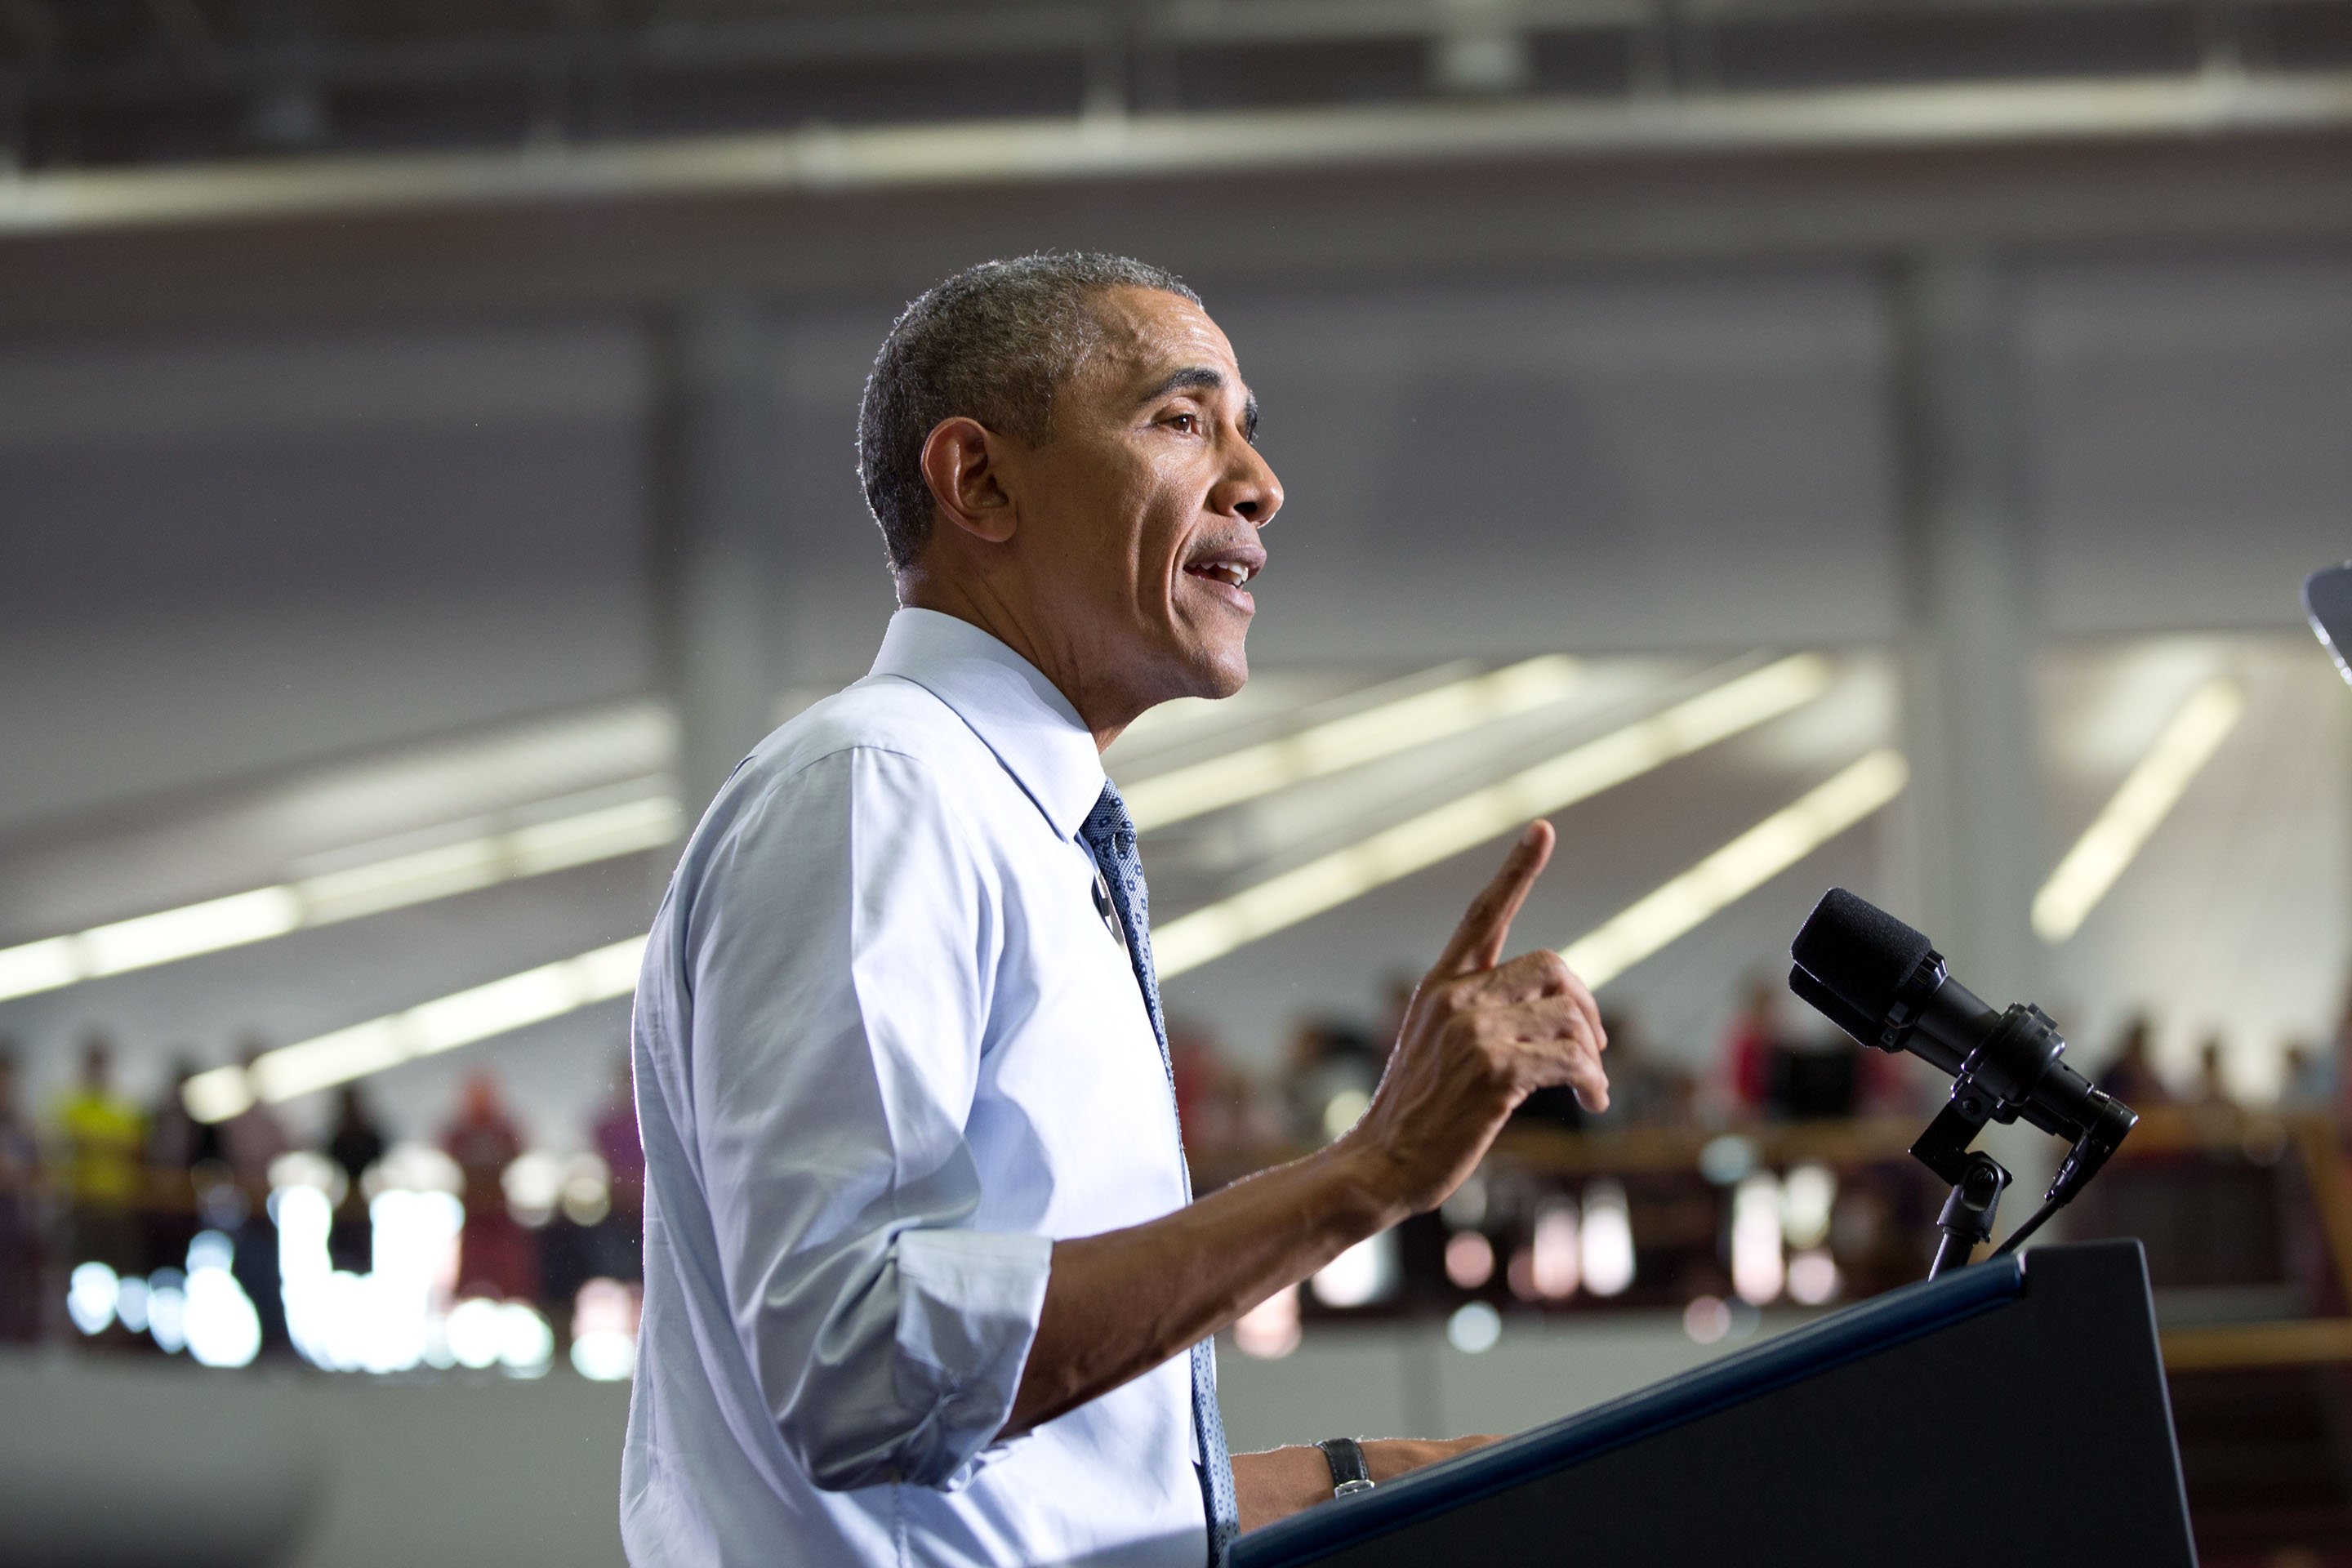 President Obama makes remarks at the University of Wisconsin at La Crosse